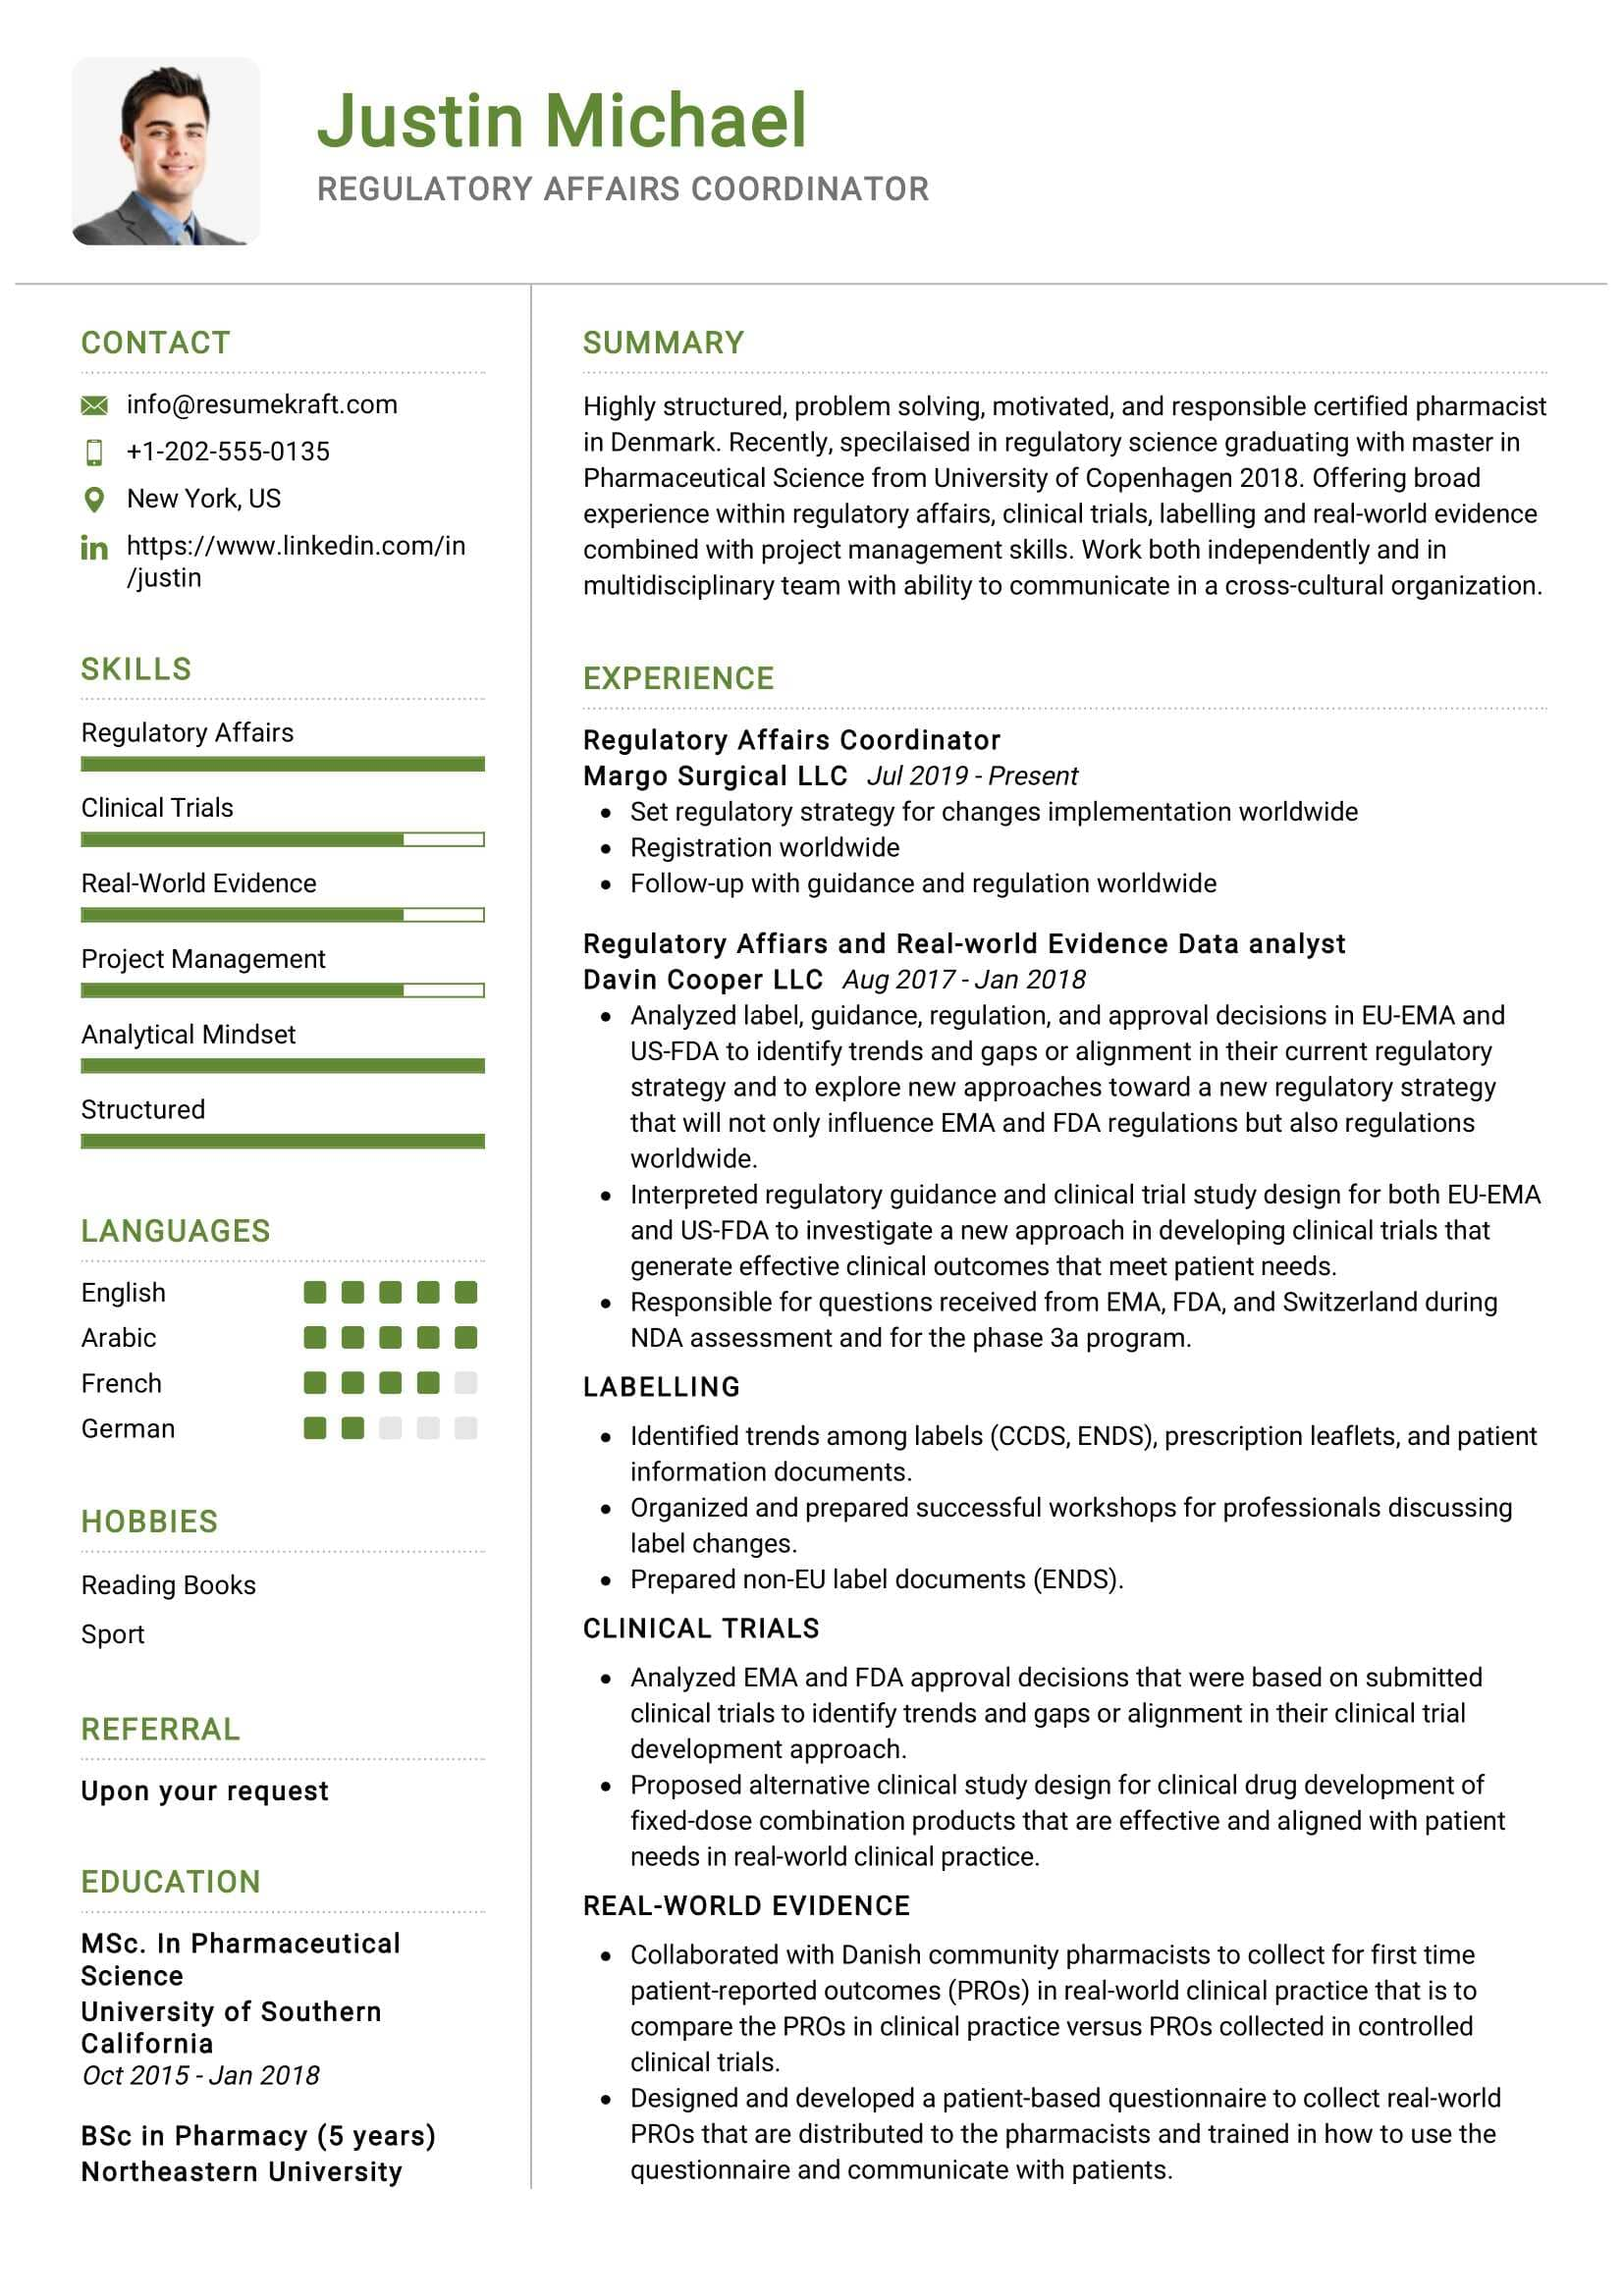 regulatory affairs coordinator sample resumekraft pharmaceutical resume summary about Resume Pharmaceutical Regulatory Affairs Resume